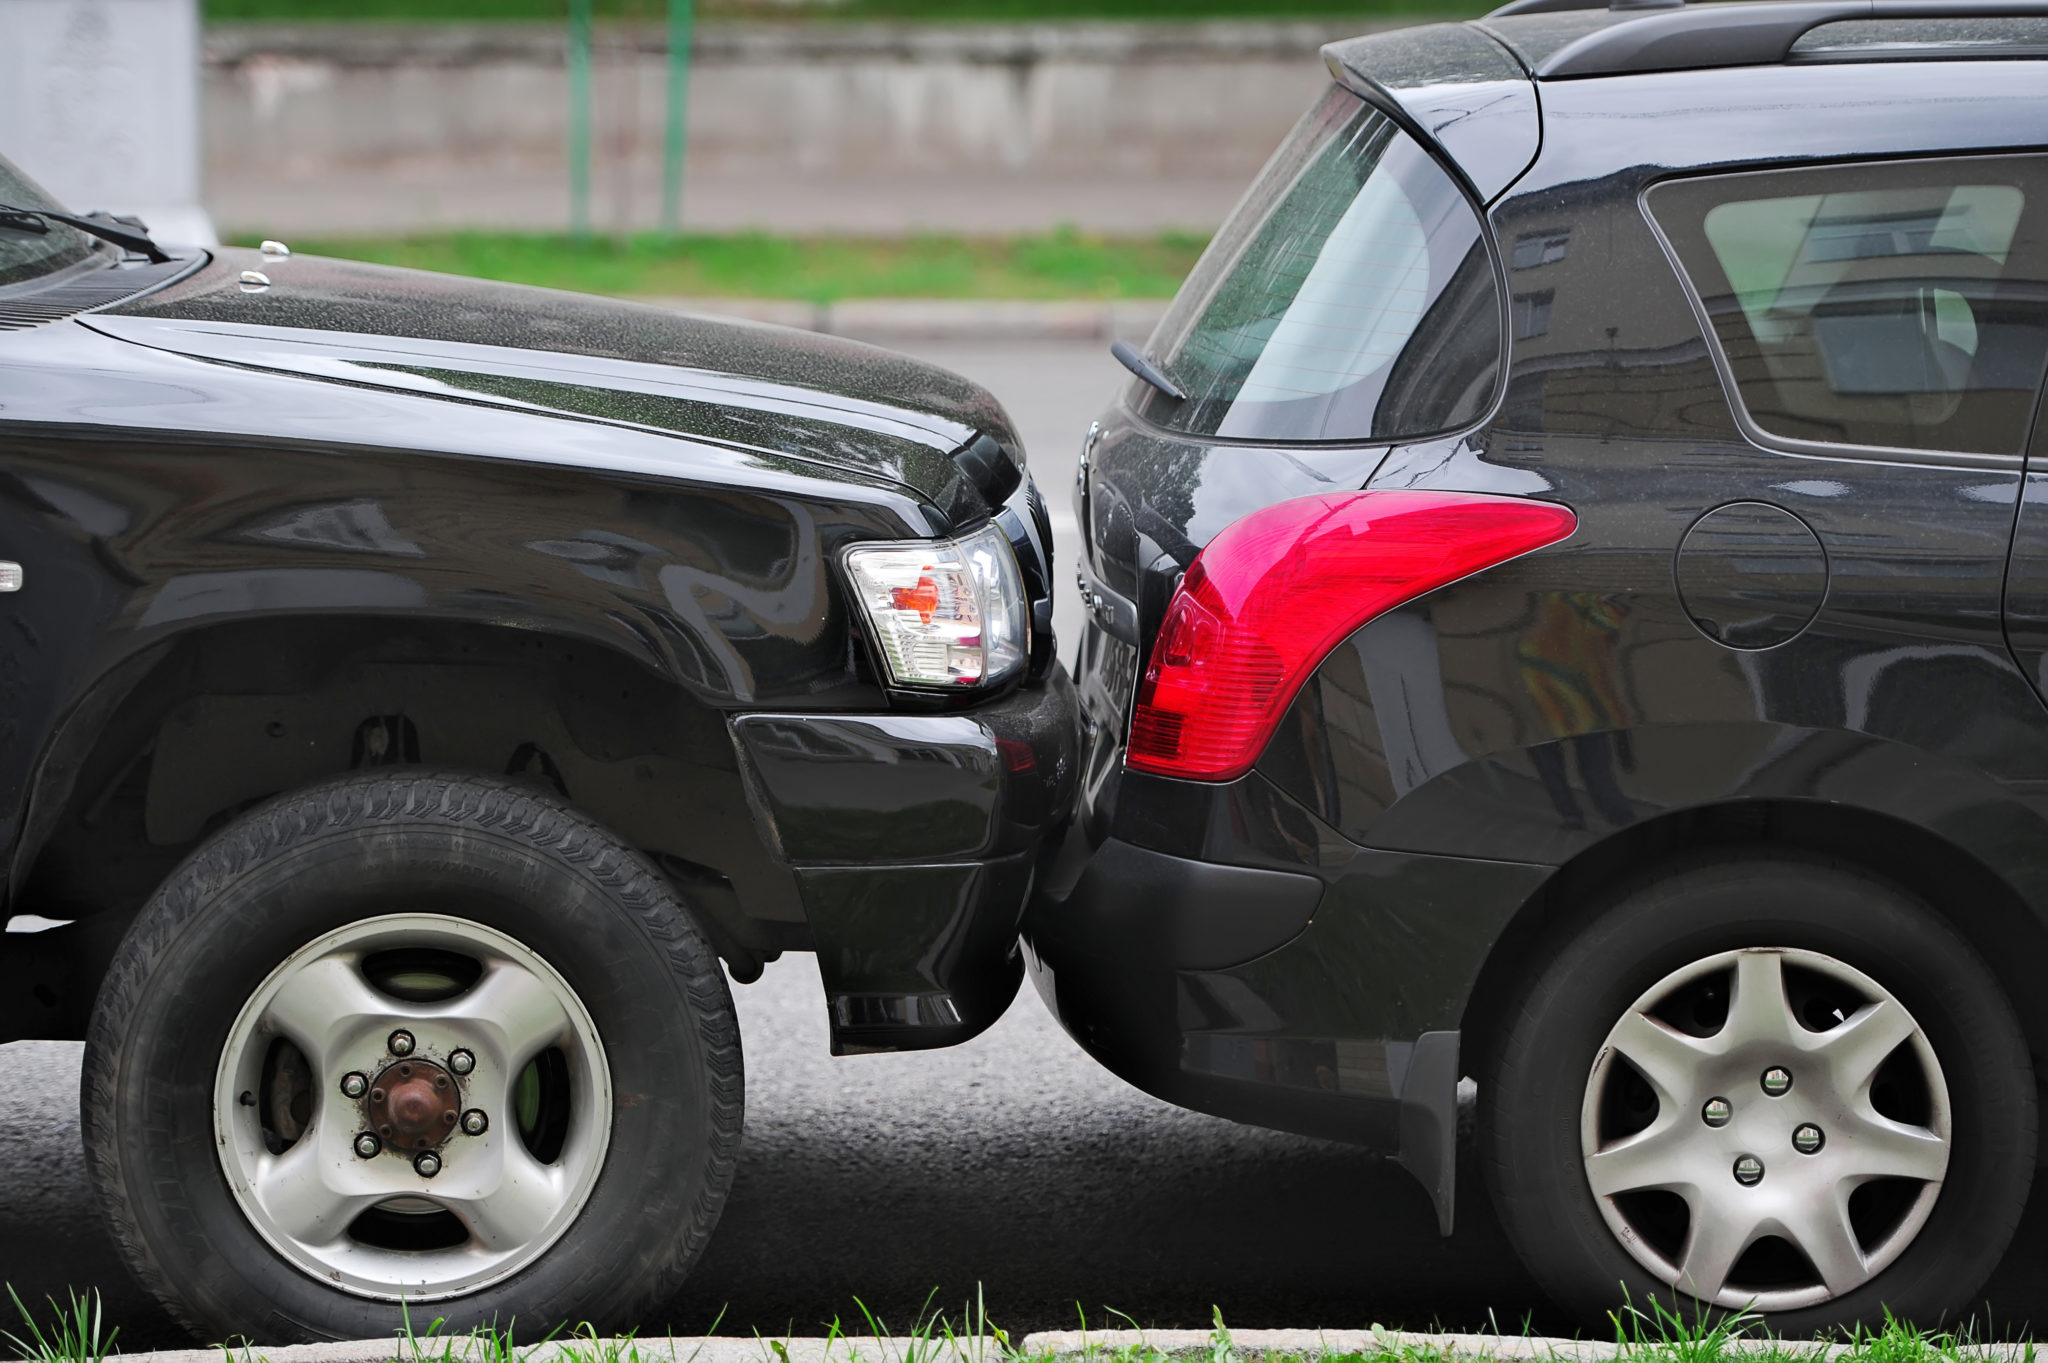 Common Types of Hidden Damage After a Car Crash